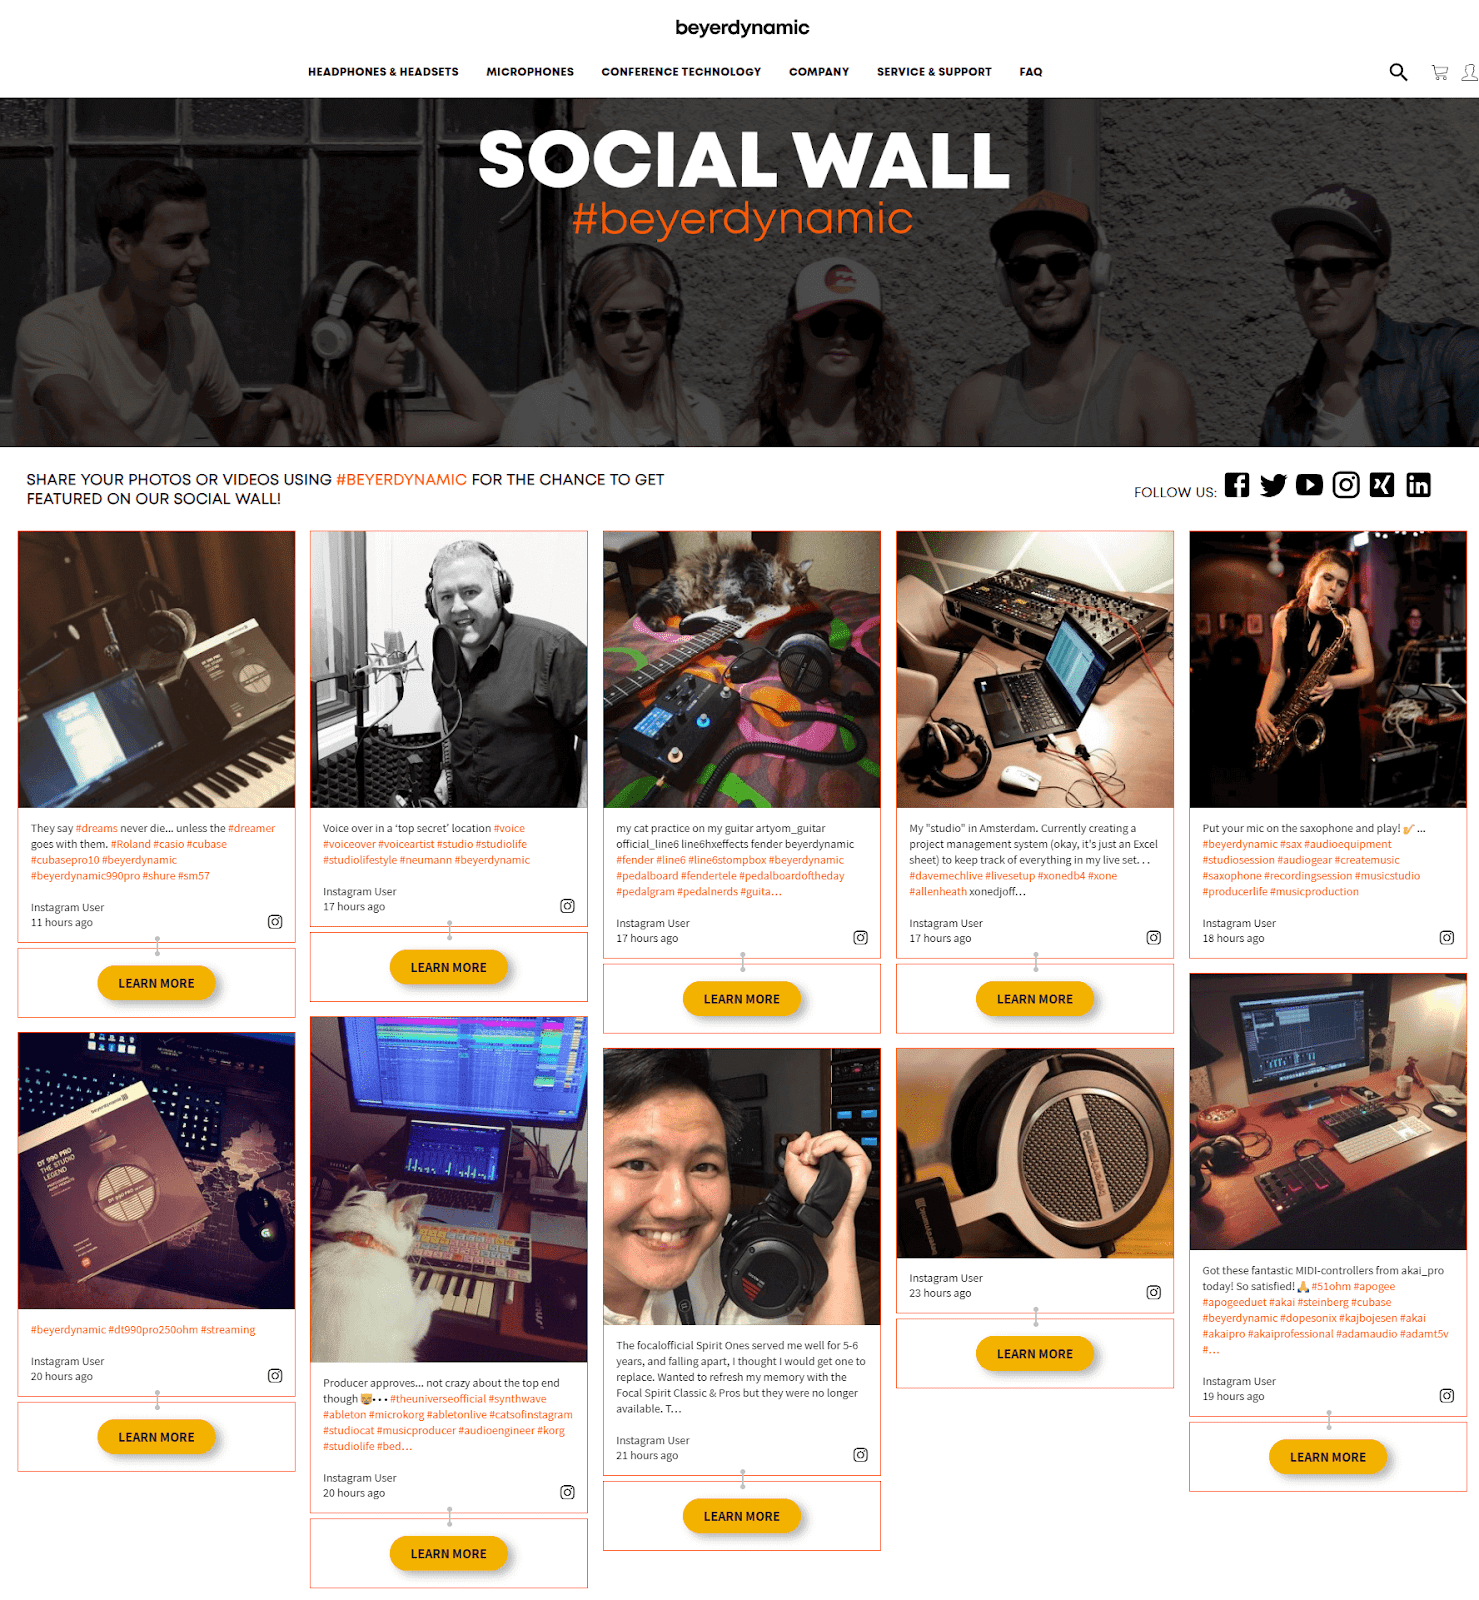 Screenshot of beyerdynamic's social feed showcasing user-generated content with CTA buttons that say Learn more.